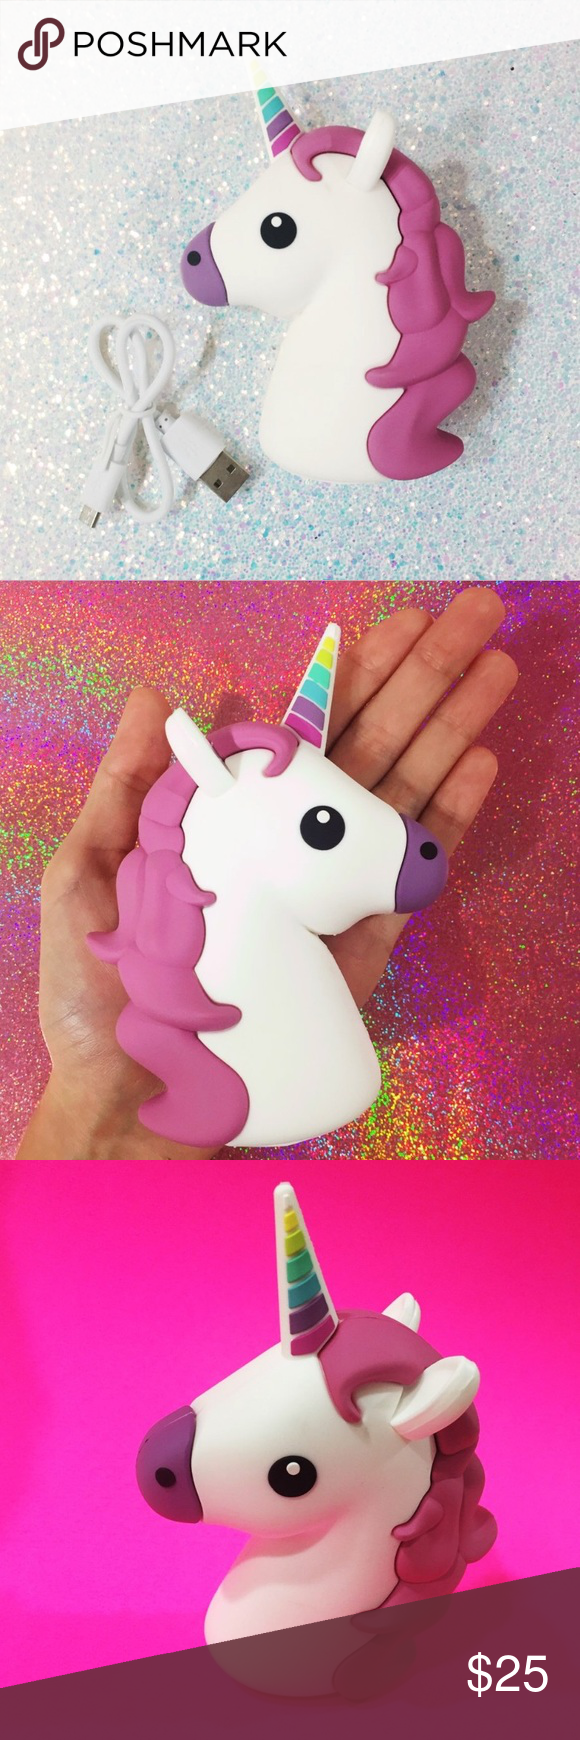 Unicorn Power bank Power bank Unihorne usb phone charger by Wattzup. Device charges IOS & Android devices. Such as Apple Iphone 5s/5/6/6s/6+/6s+ Samsung galaxy S7/S6/ S7 edge etc - 100% full charge for Iphone 6/6s and up to 70% charge for Iphone 6+/6+s Used it as a prop for pictures but never to charge my phone. It is brand new! Ships without box. Retail price is 40$ selling it for 25$ . #unicorn #powerbank #dollskill #uo #forever21 #kawaii #emoji #unicornemoji #dollskill #unif #girlboss…